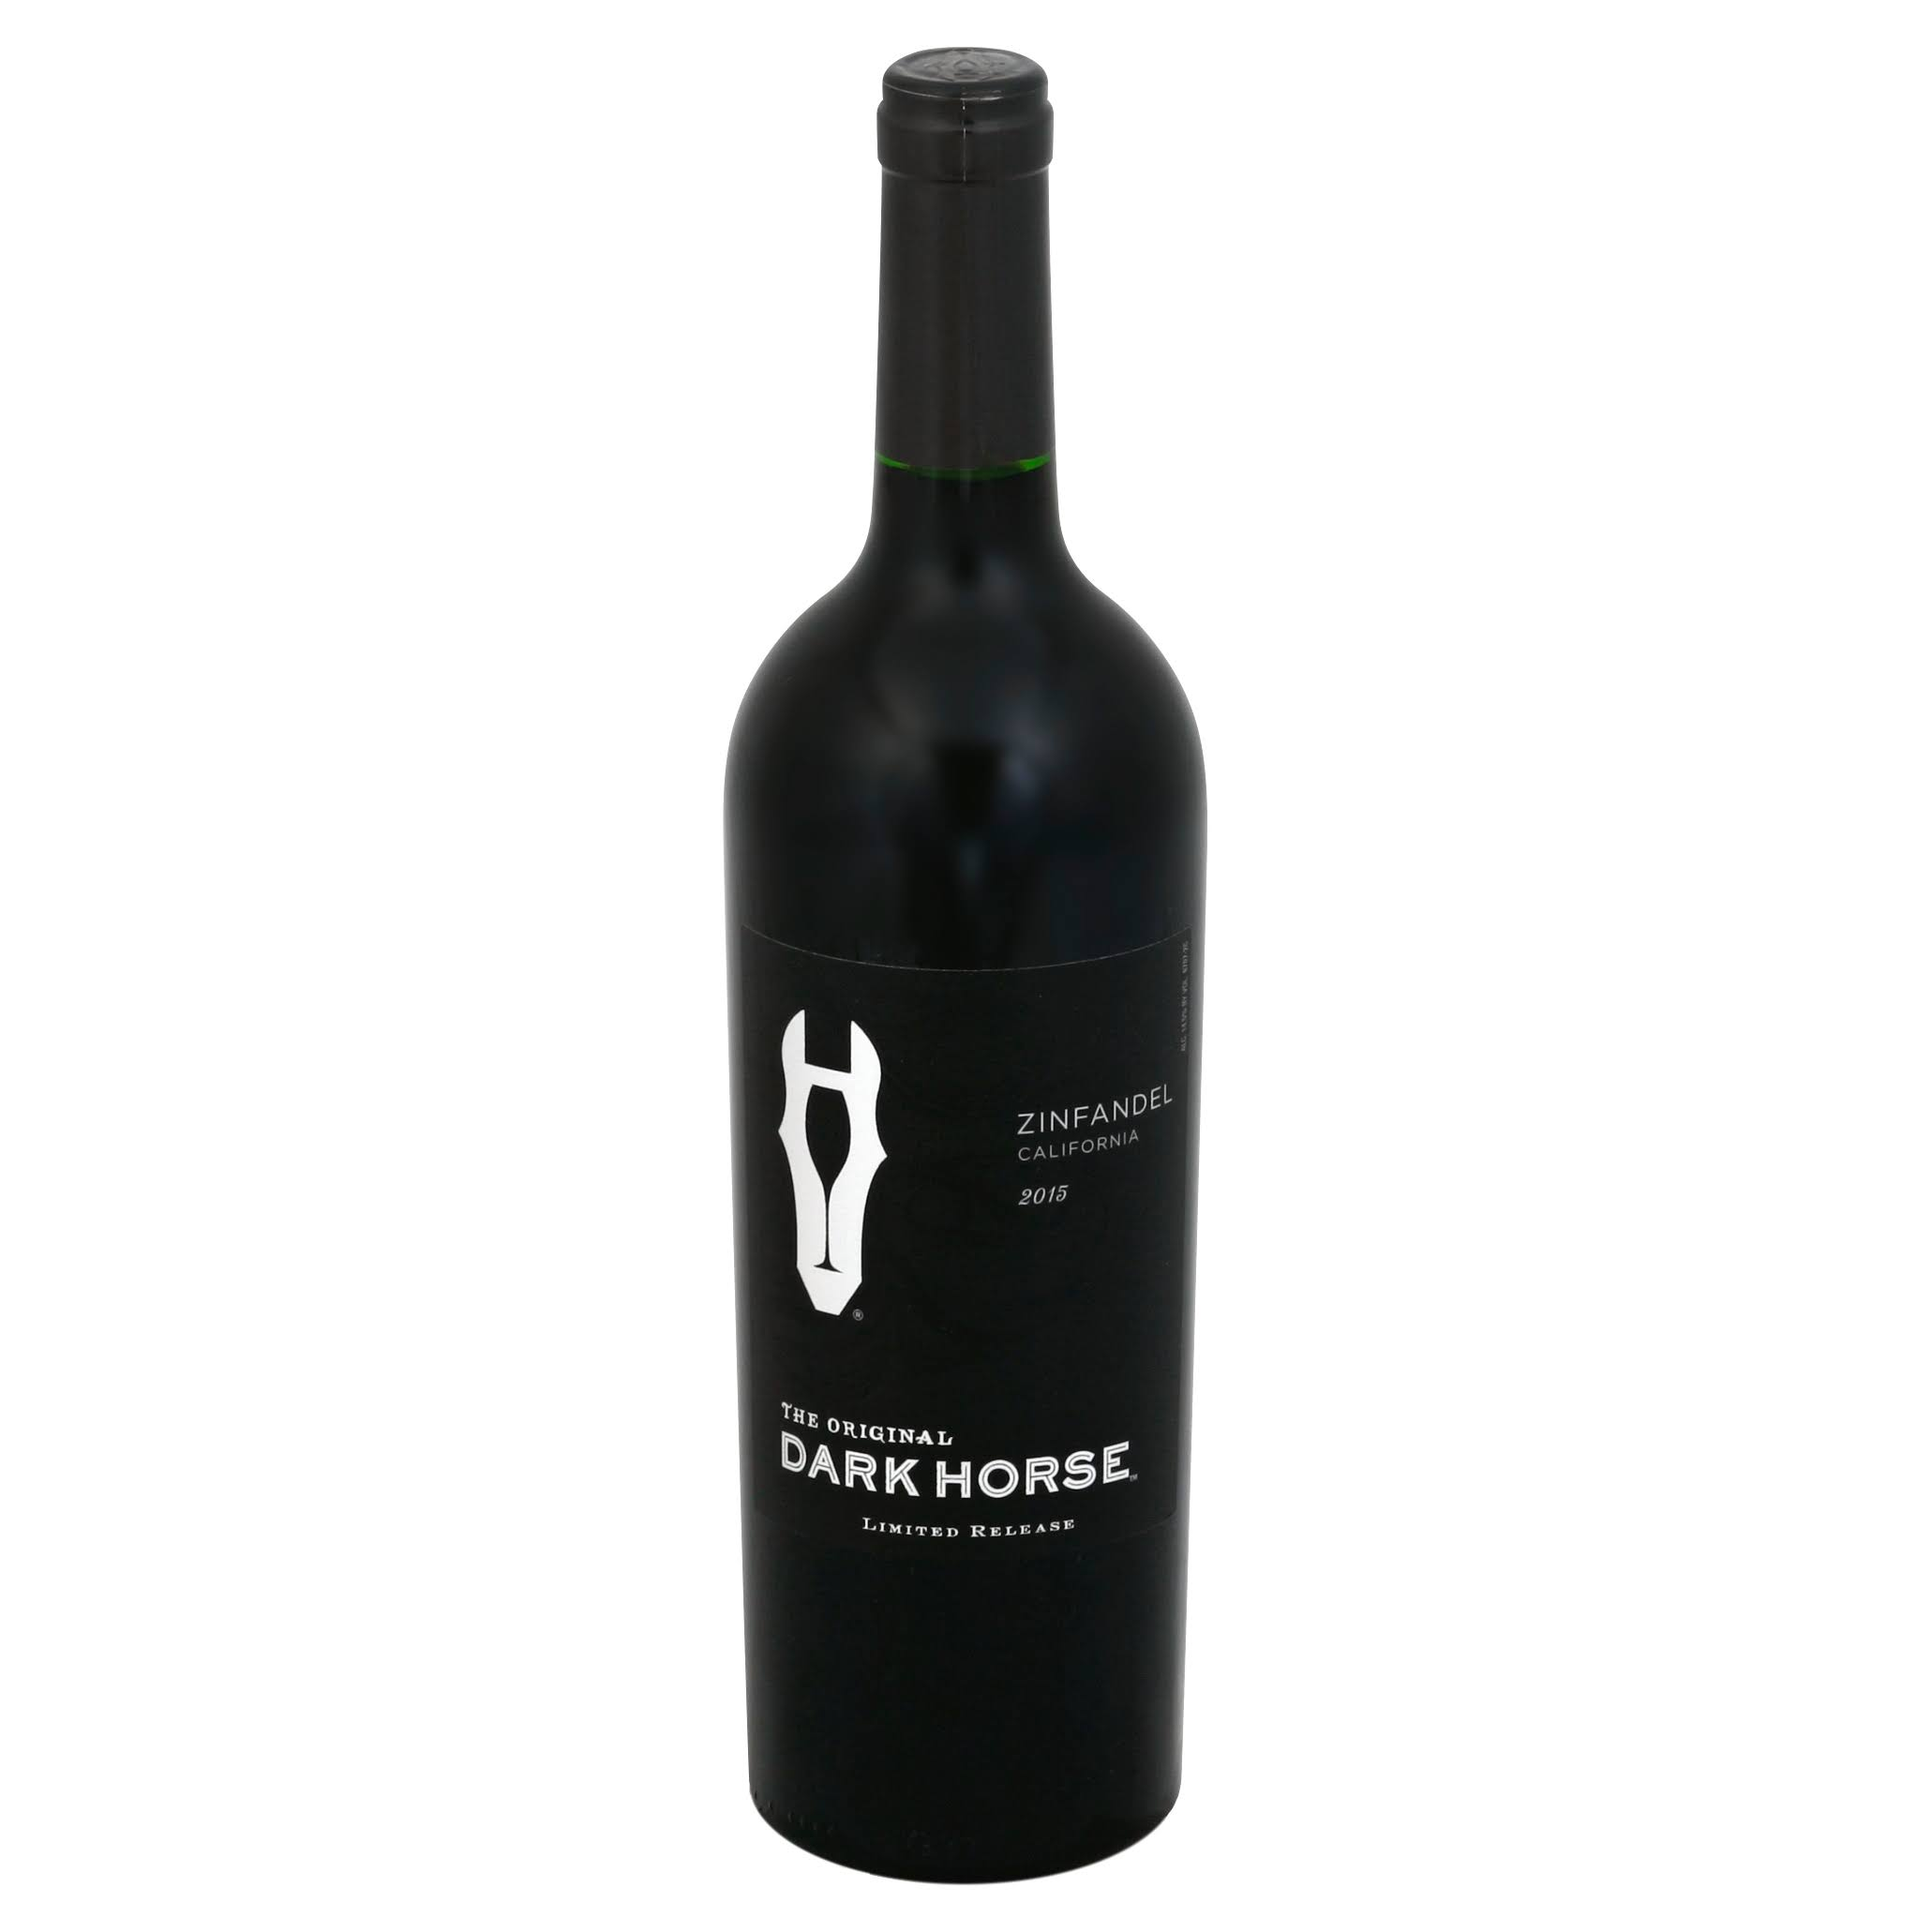 Dark Horse Zinfandel Wine - 750ml